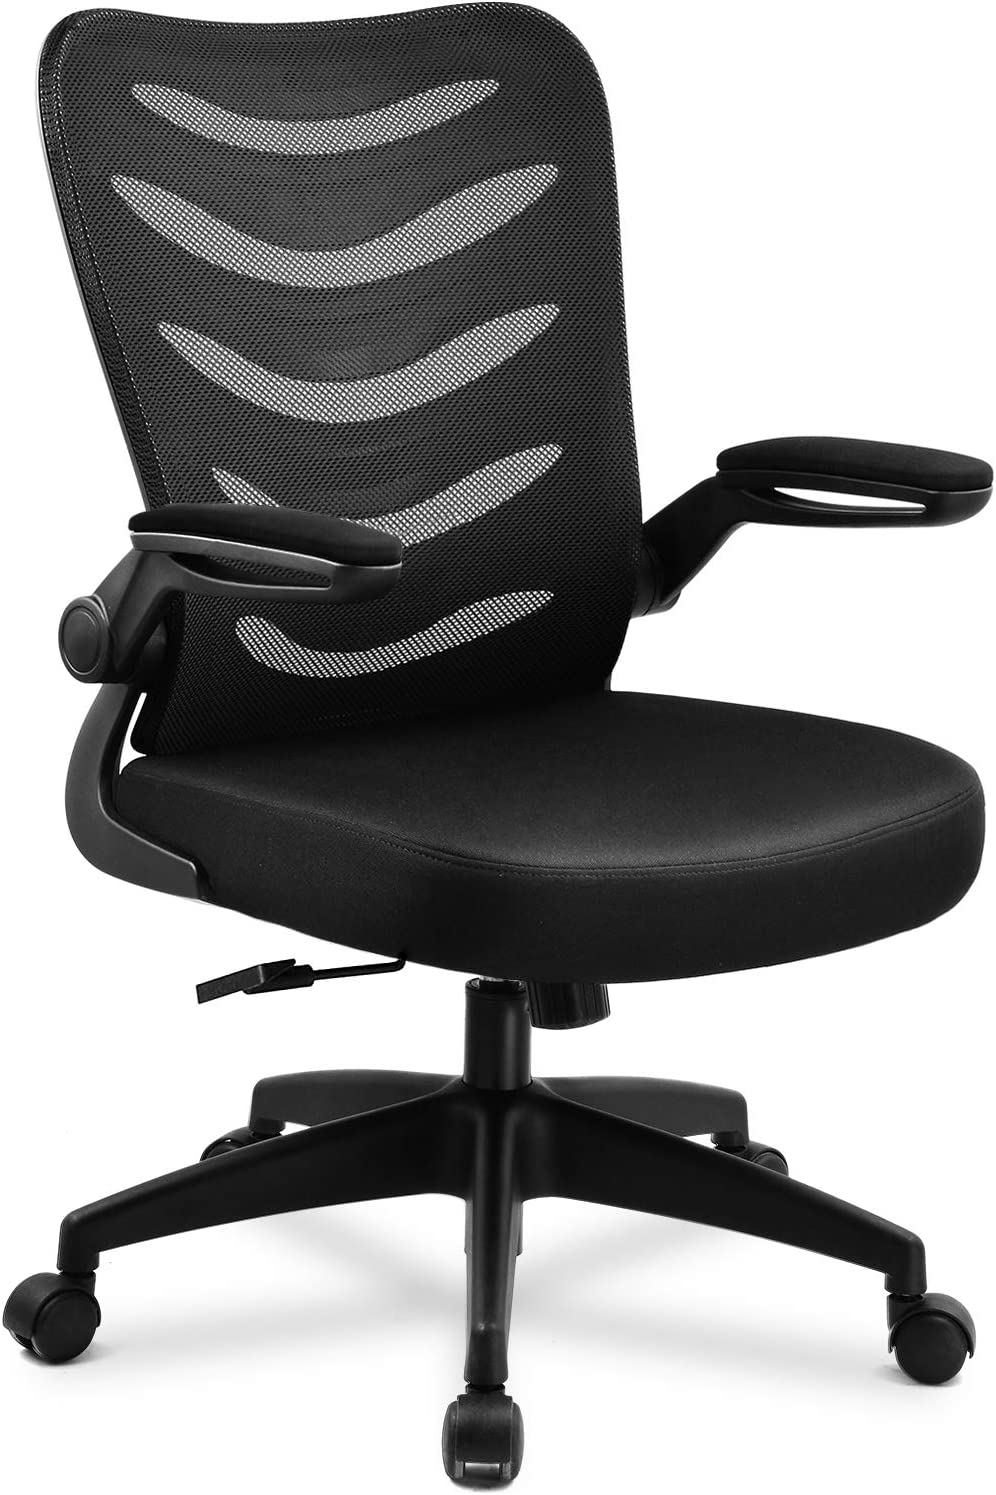 Amazon Com Comhoma Desk Chair Ergonomic Office Chair Mesh Computer Chair With Flip Up Arms Lumbar Support Adjustable Swivel Mid Back For Conference Home Office Black Furniture Decor